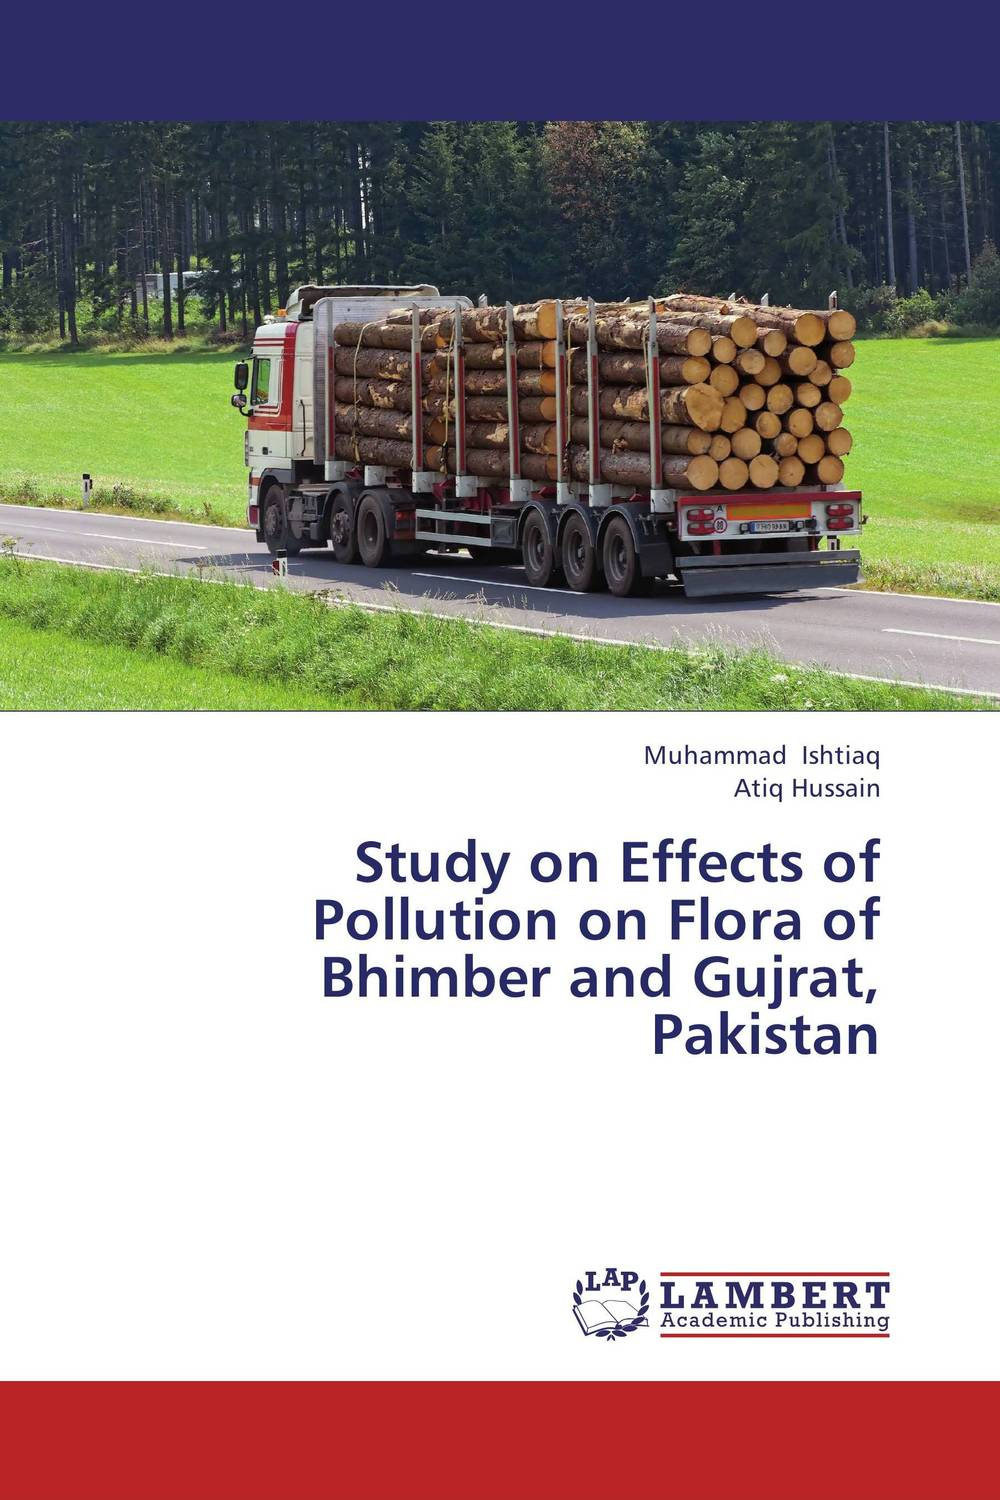 Study on Effects of Pollution on Flora of Bhimber and Gujrat, Pakistan root and canal morphology of third molar